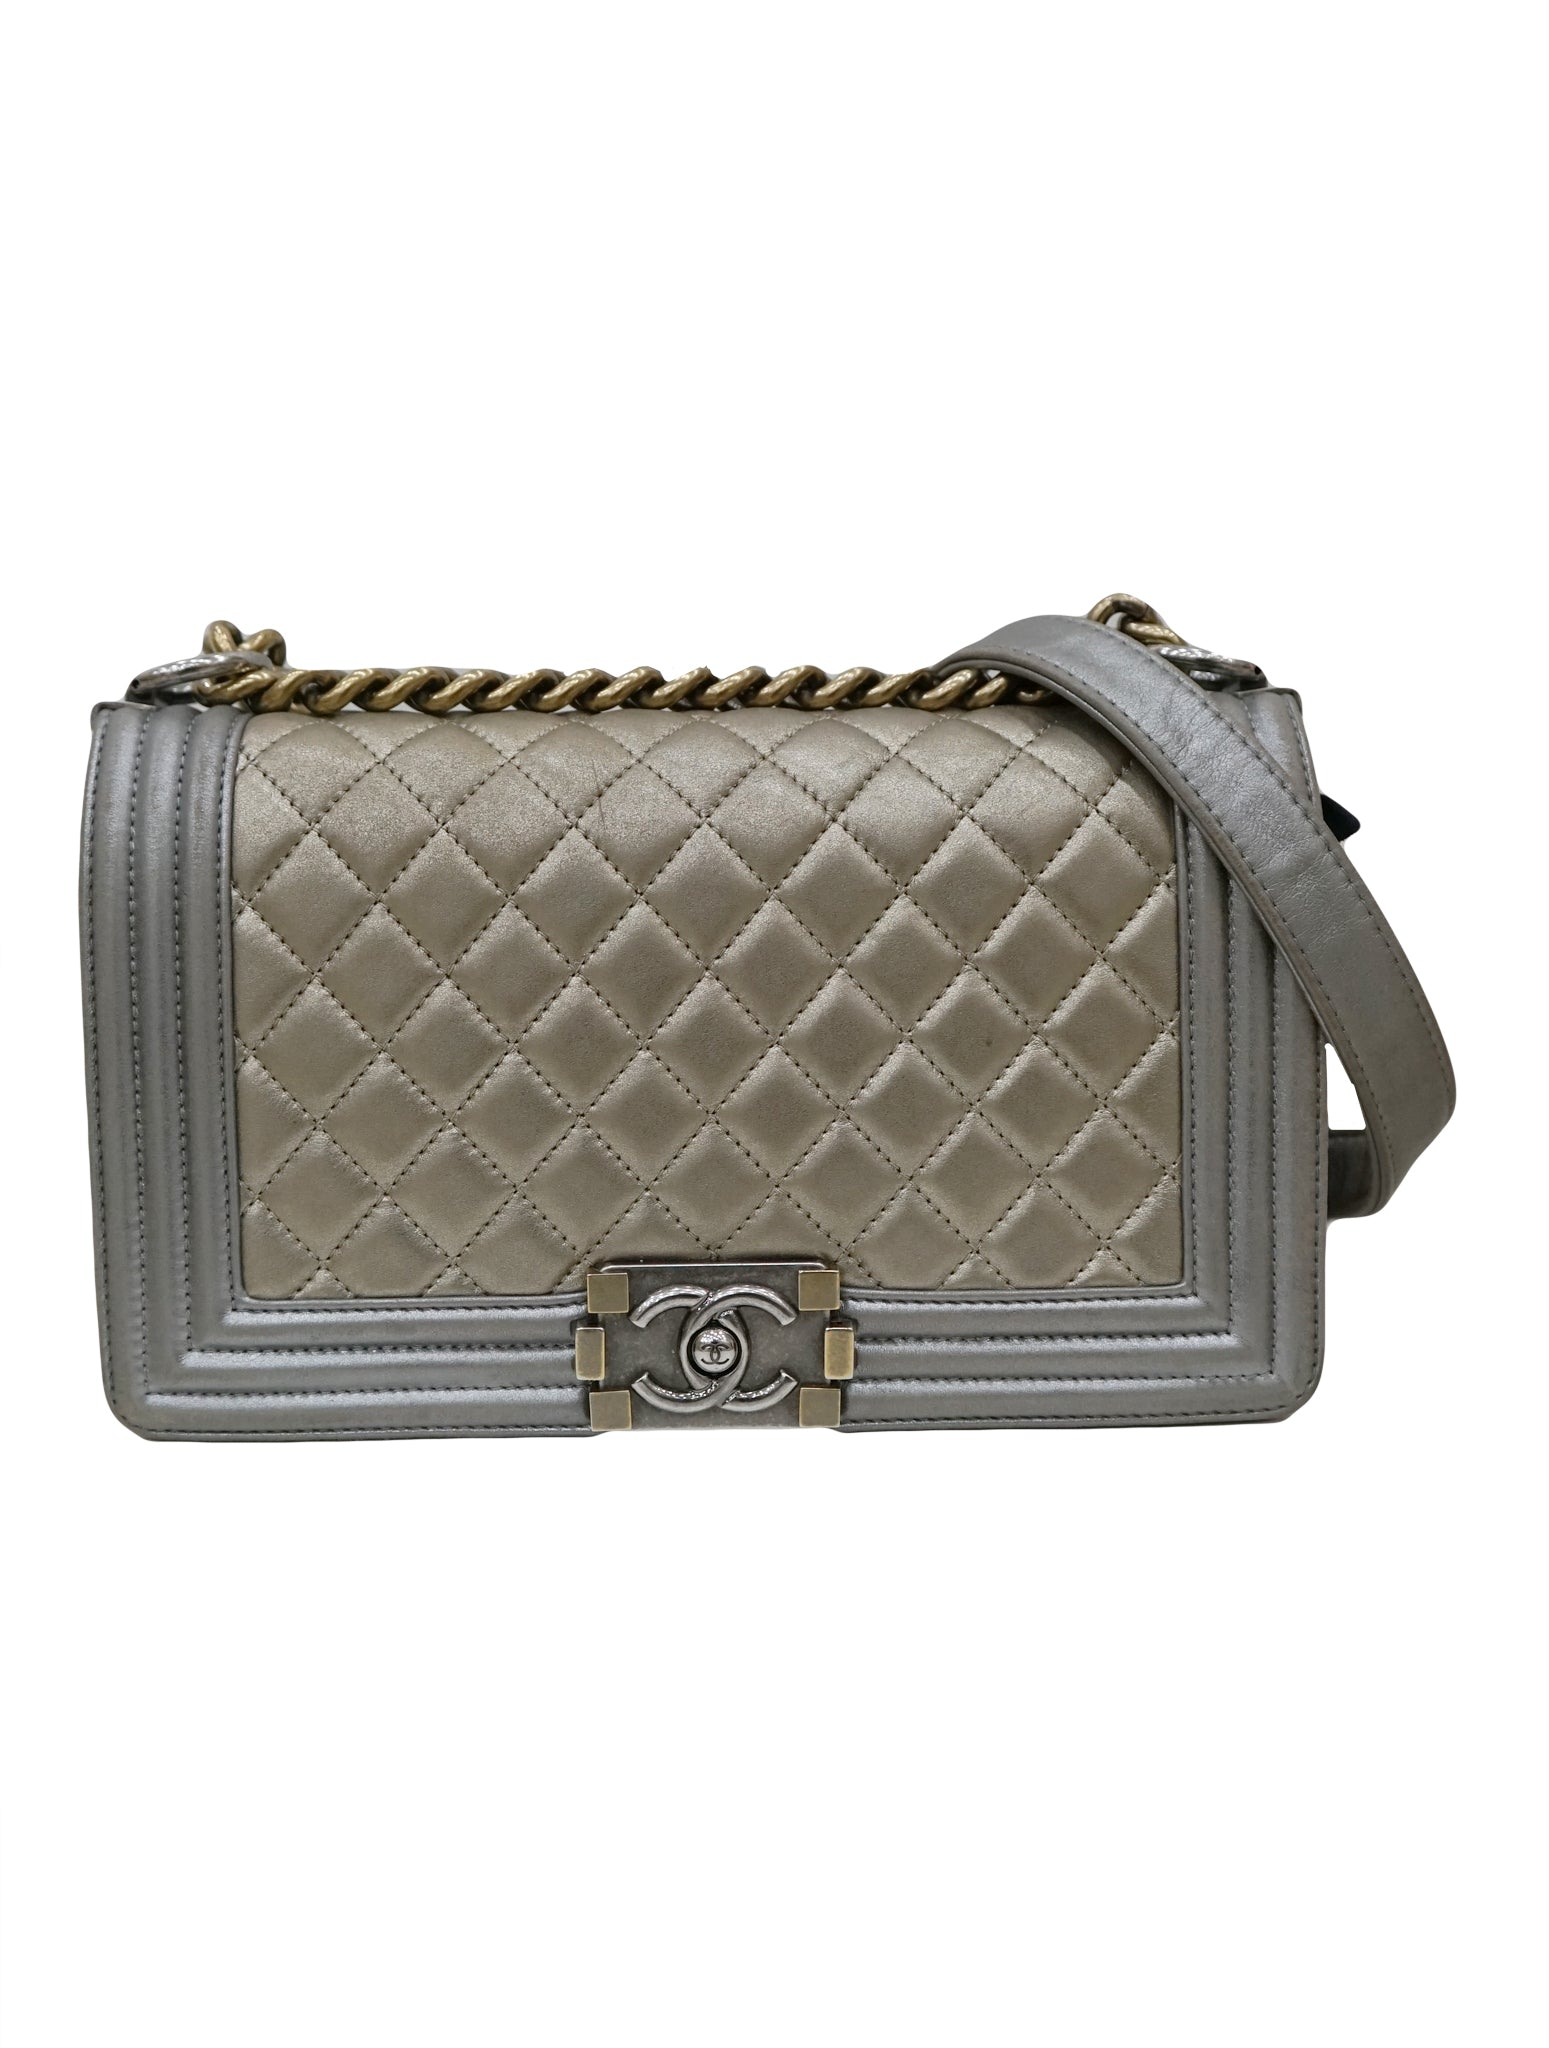 QUILTED LAMBSKIN BOY BAG